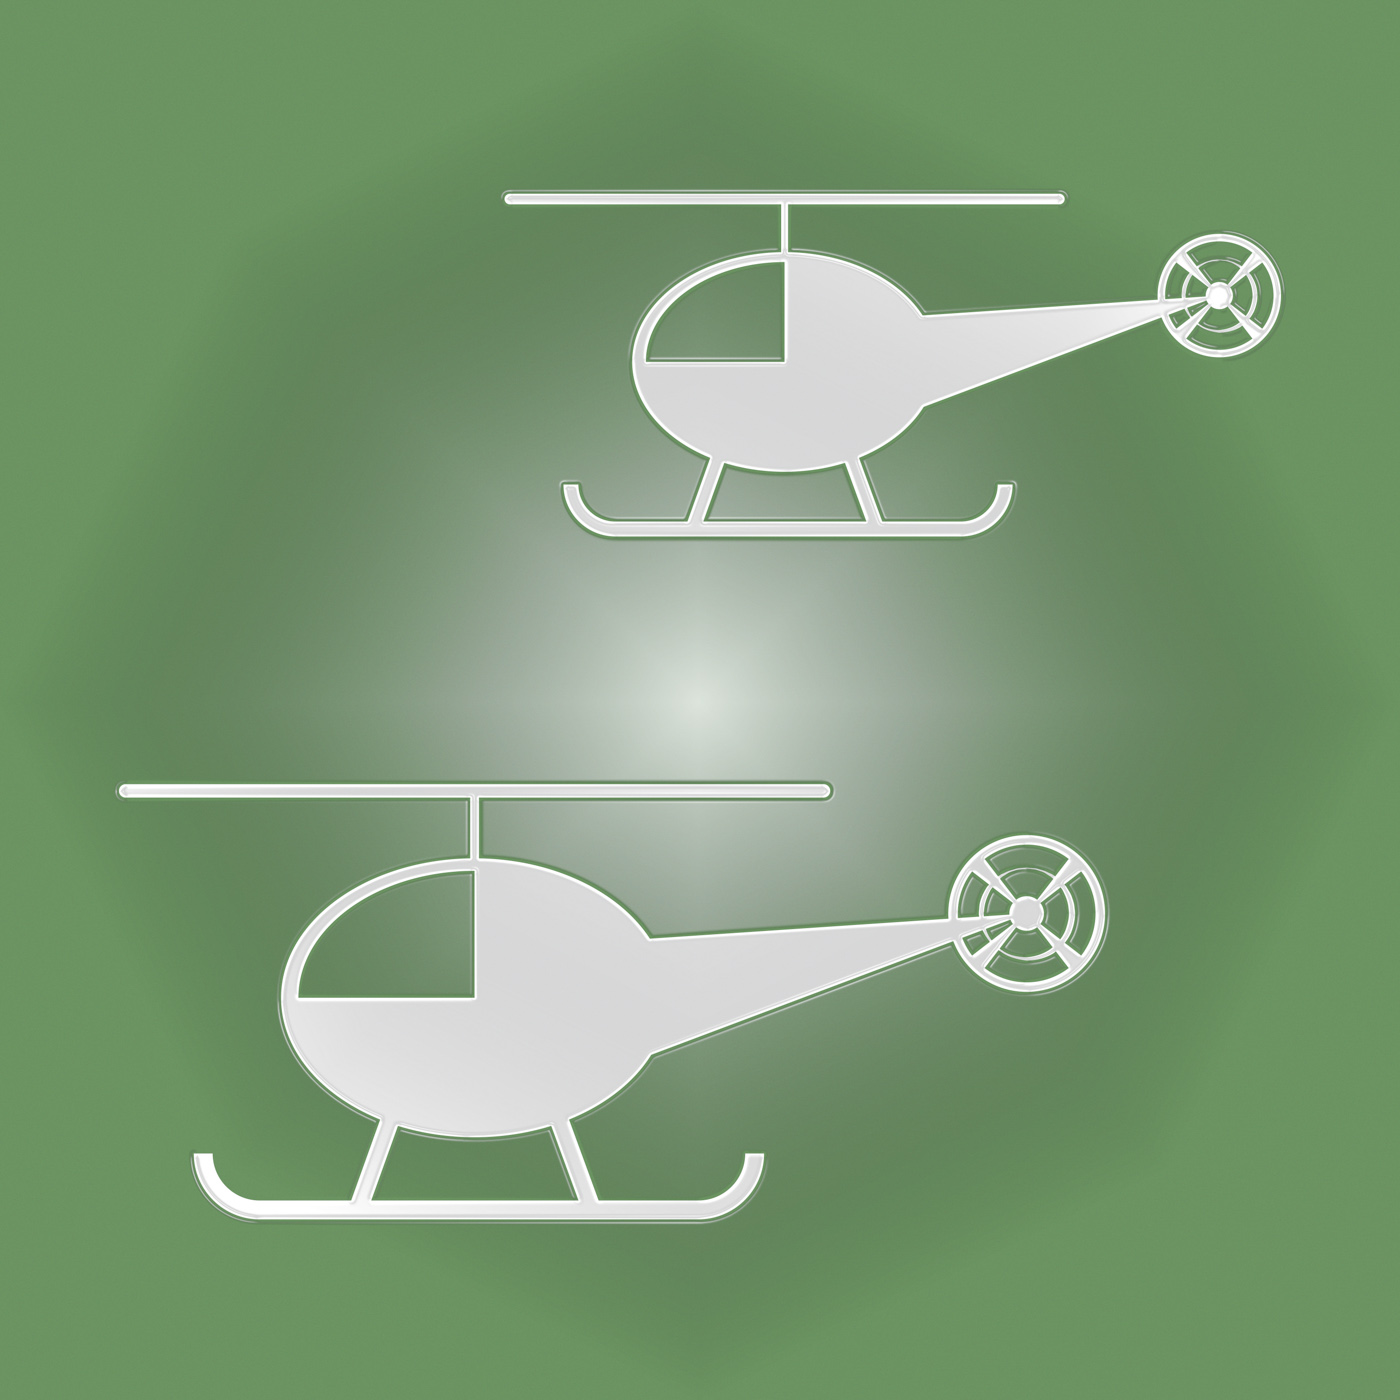 Helicopters icon shows rotor midair and flight photo